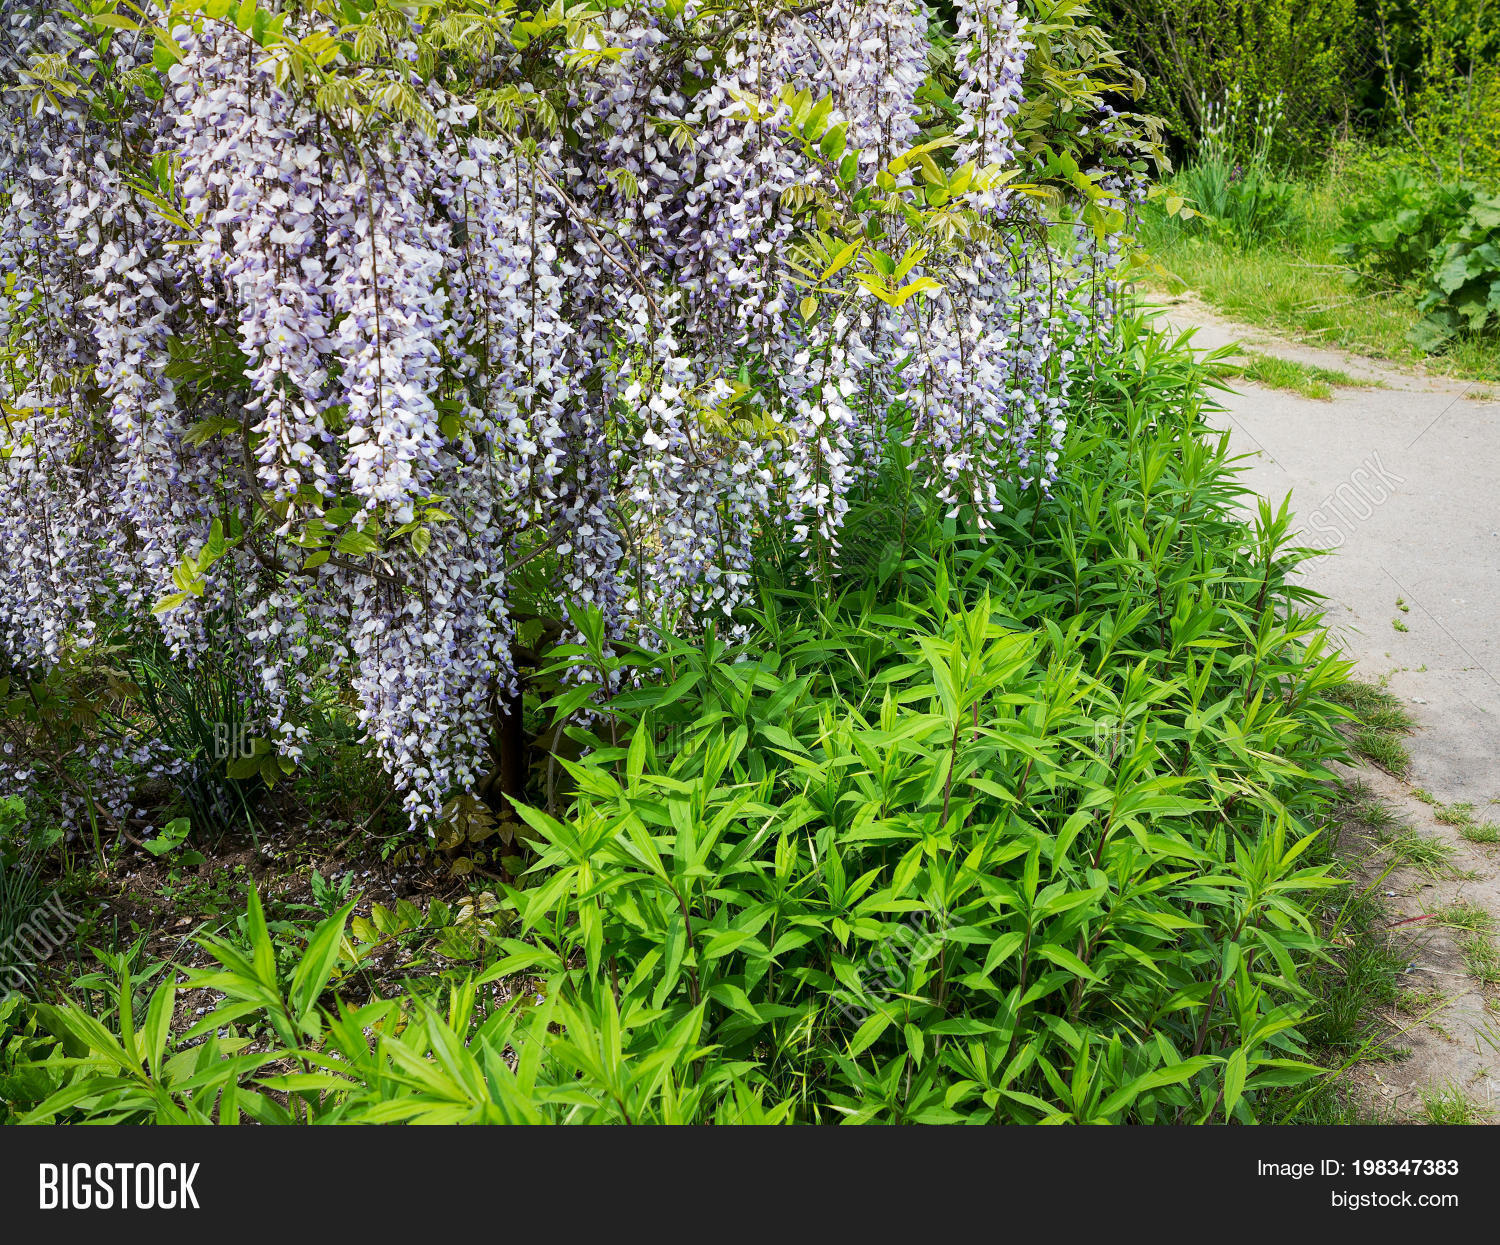 Flowering Wisteria Image & Photo (Free Trial) | Bigstock